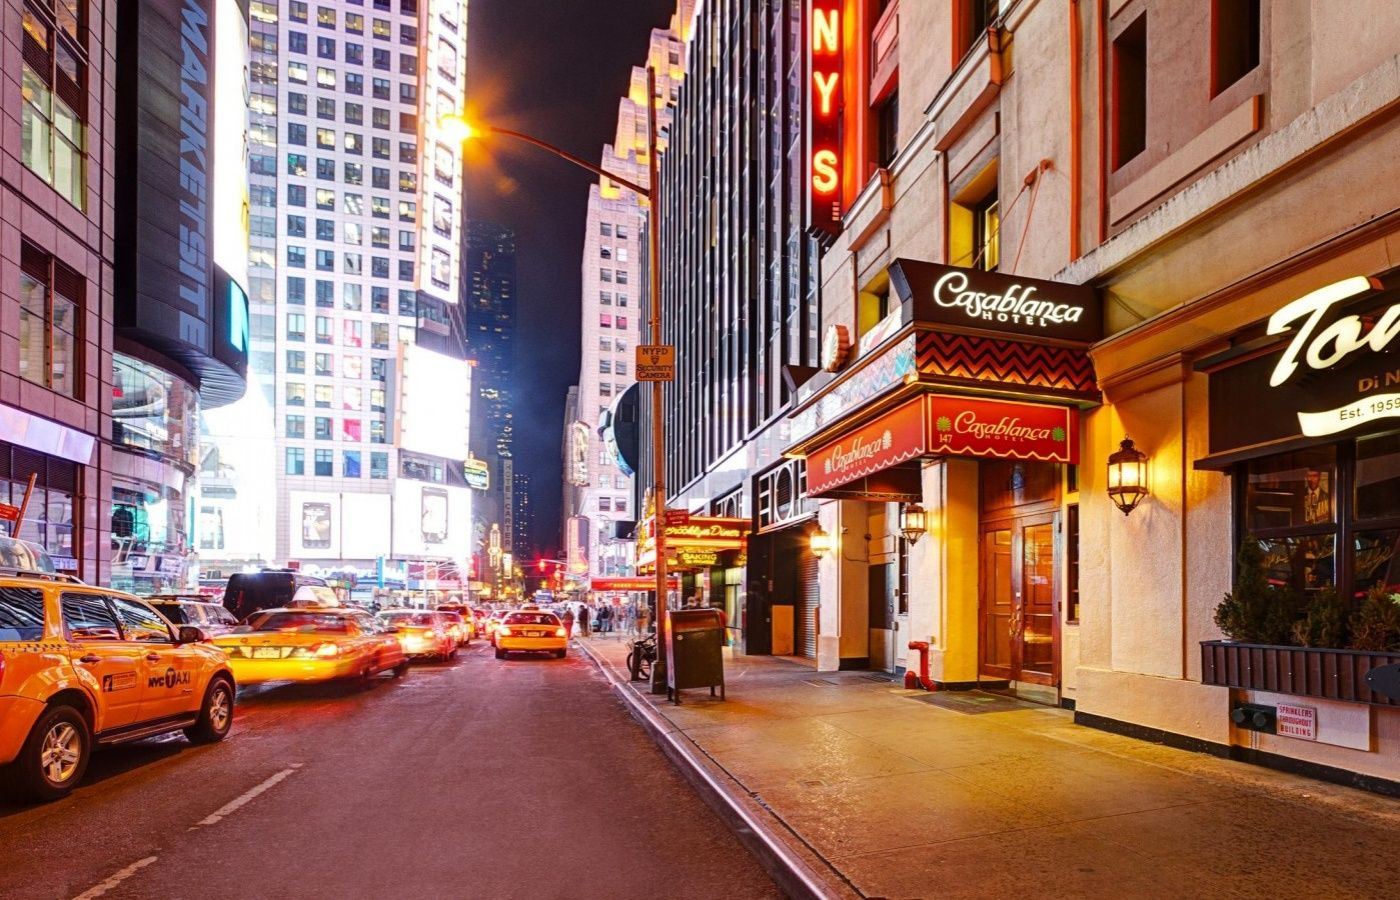 The Casablanca Hotel New York Luxury Boutique Hotel In Times Square Found This Place After Boutique Hotels New York Casablanca Hotel Best Boutique Hotels